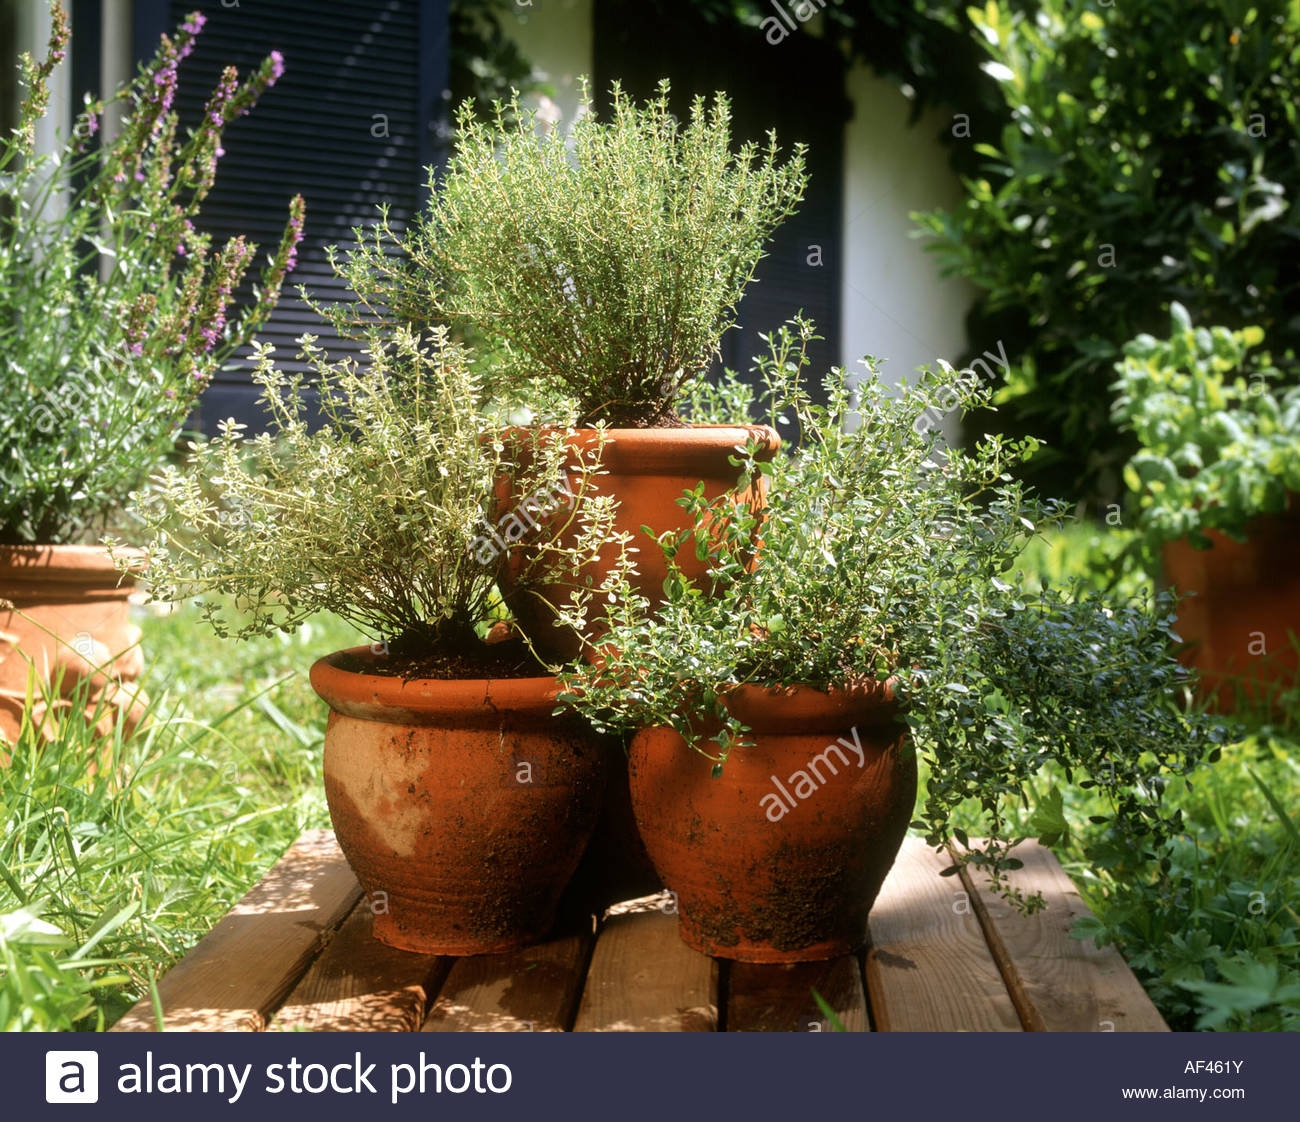 Fresh Herbs In Large Terracotta Pots In Garden Stock Photo